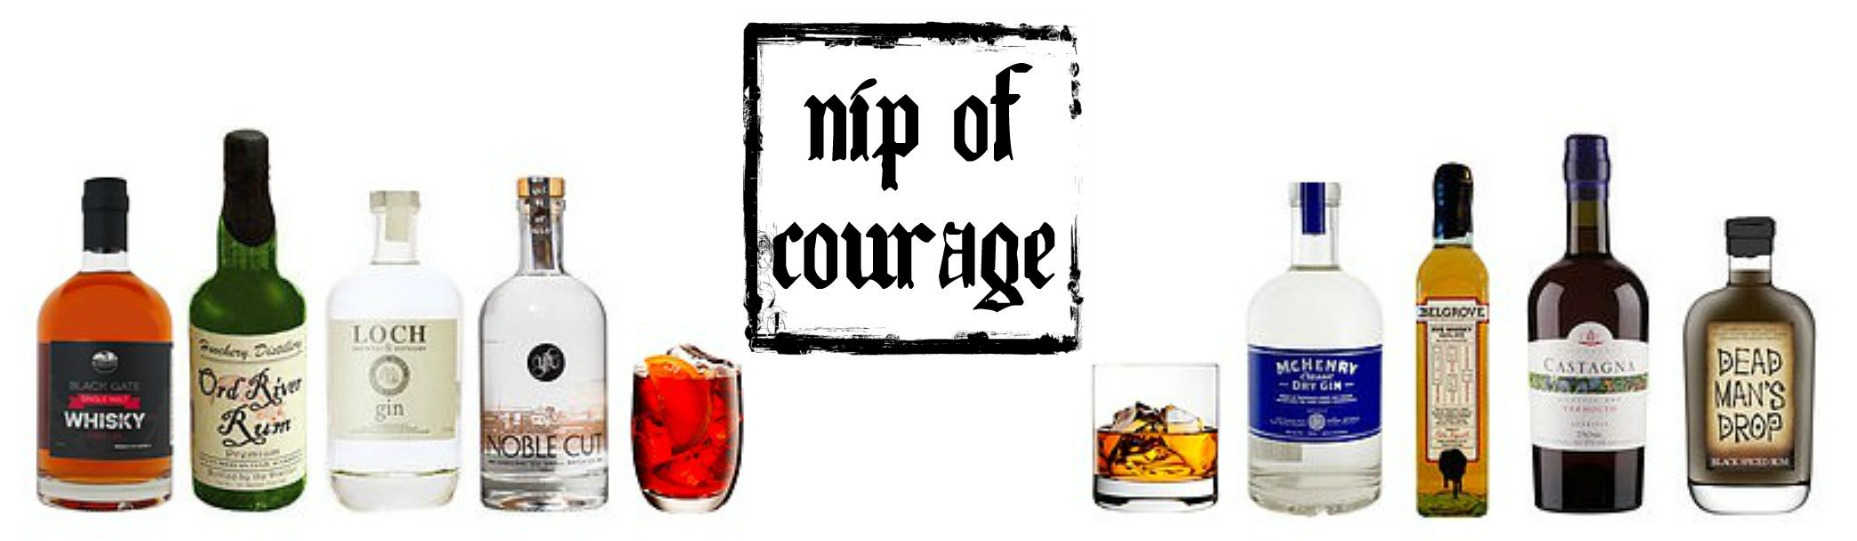 Mr & Mrs Romance - Foodie Finds - Nip of Courage